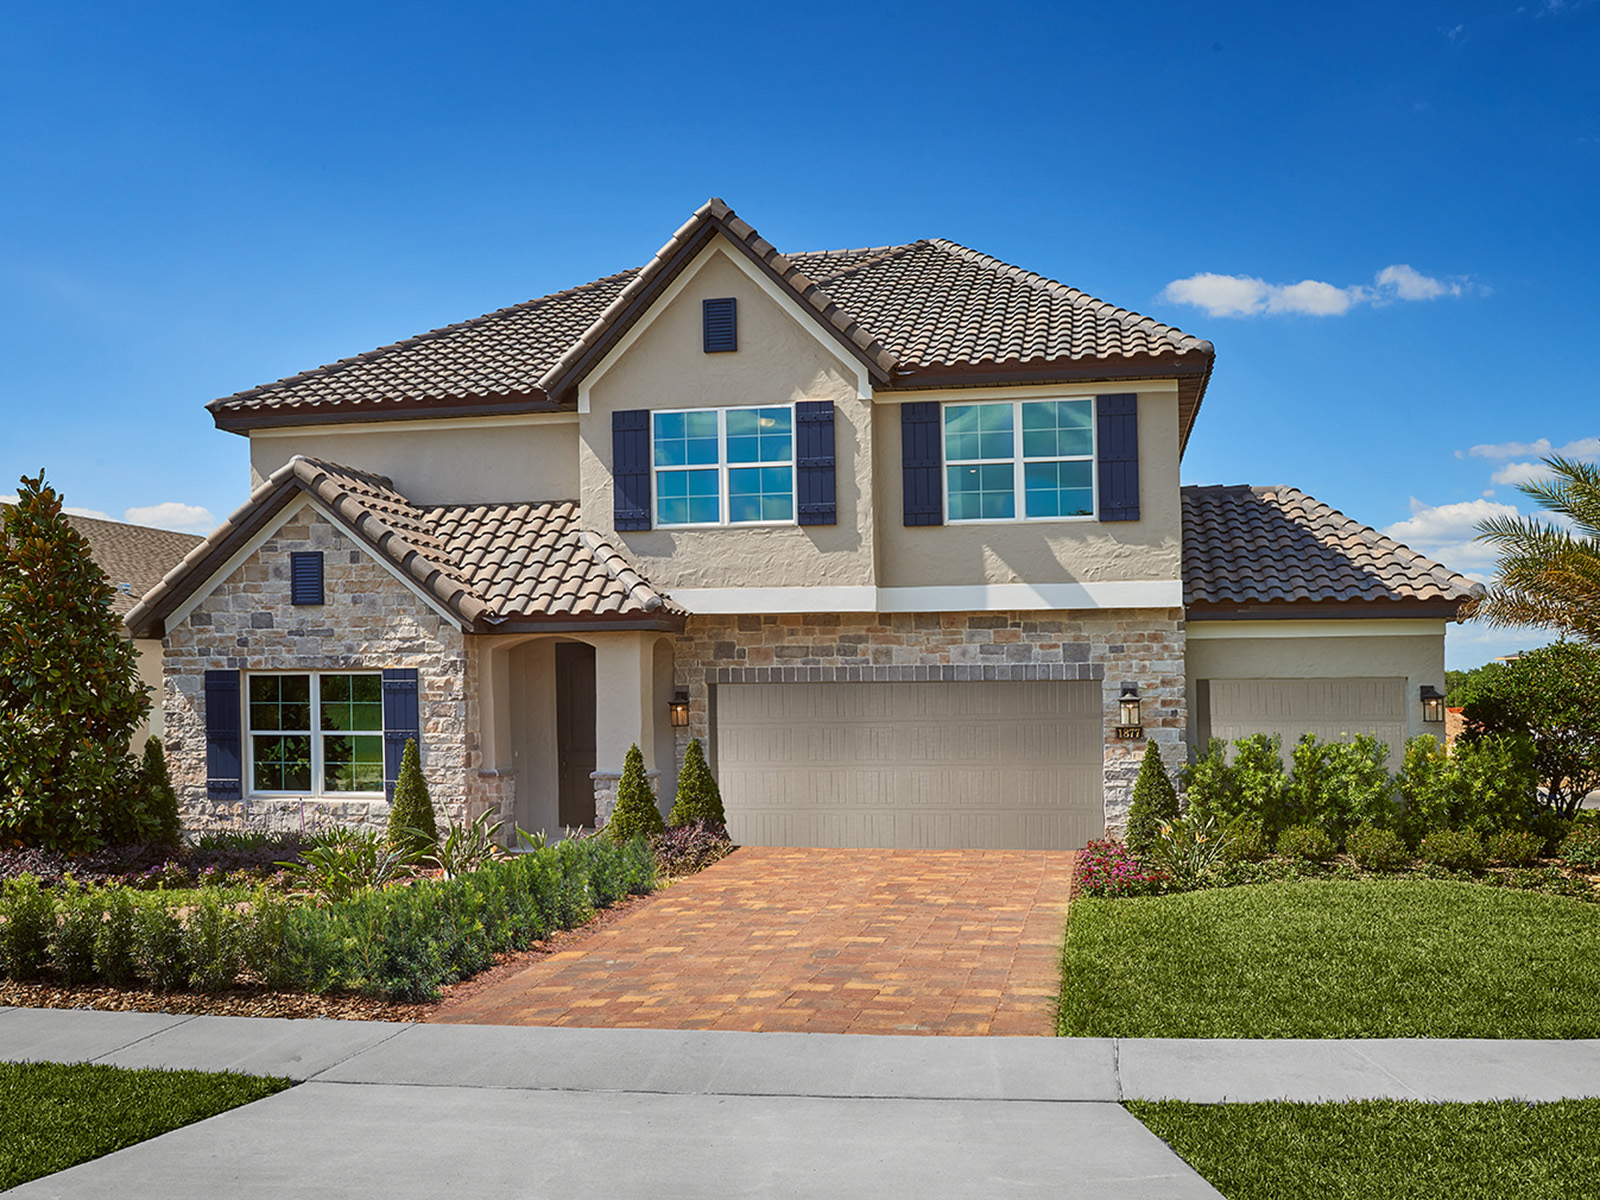 Oakland Trails By Meritage Homes New Homes For Sale In Oakland Fl